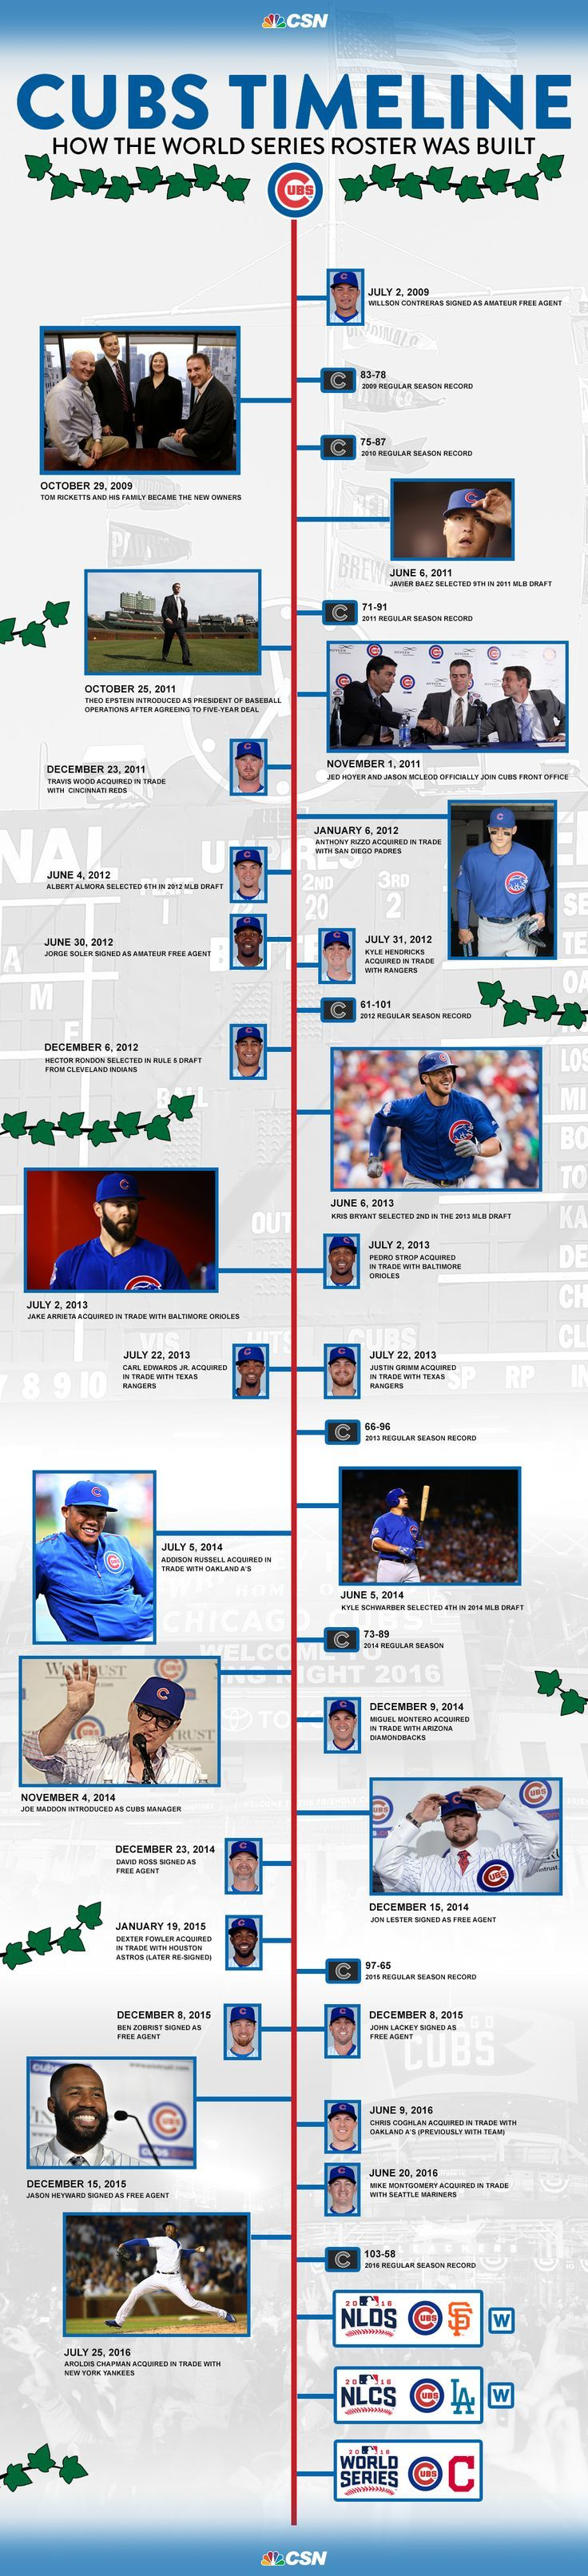 Cubs Timeline: How the World Series roster was built | CSN Chicago